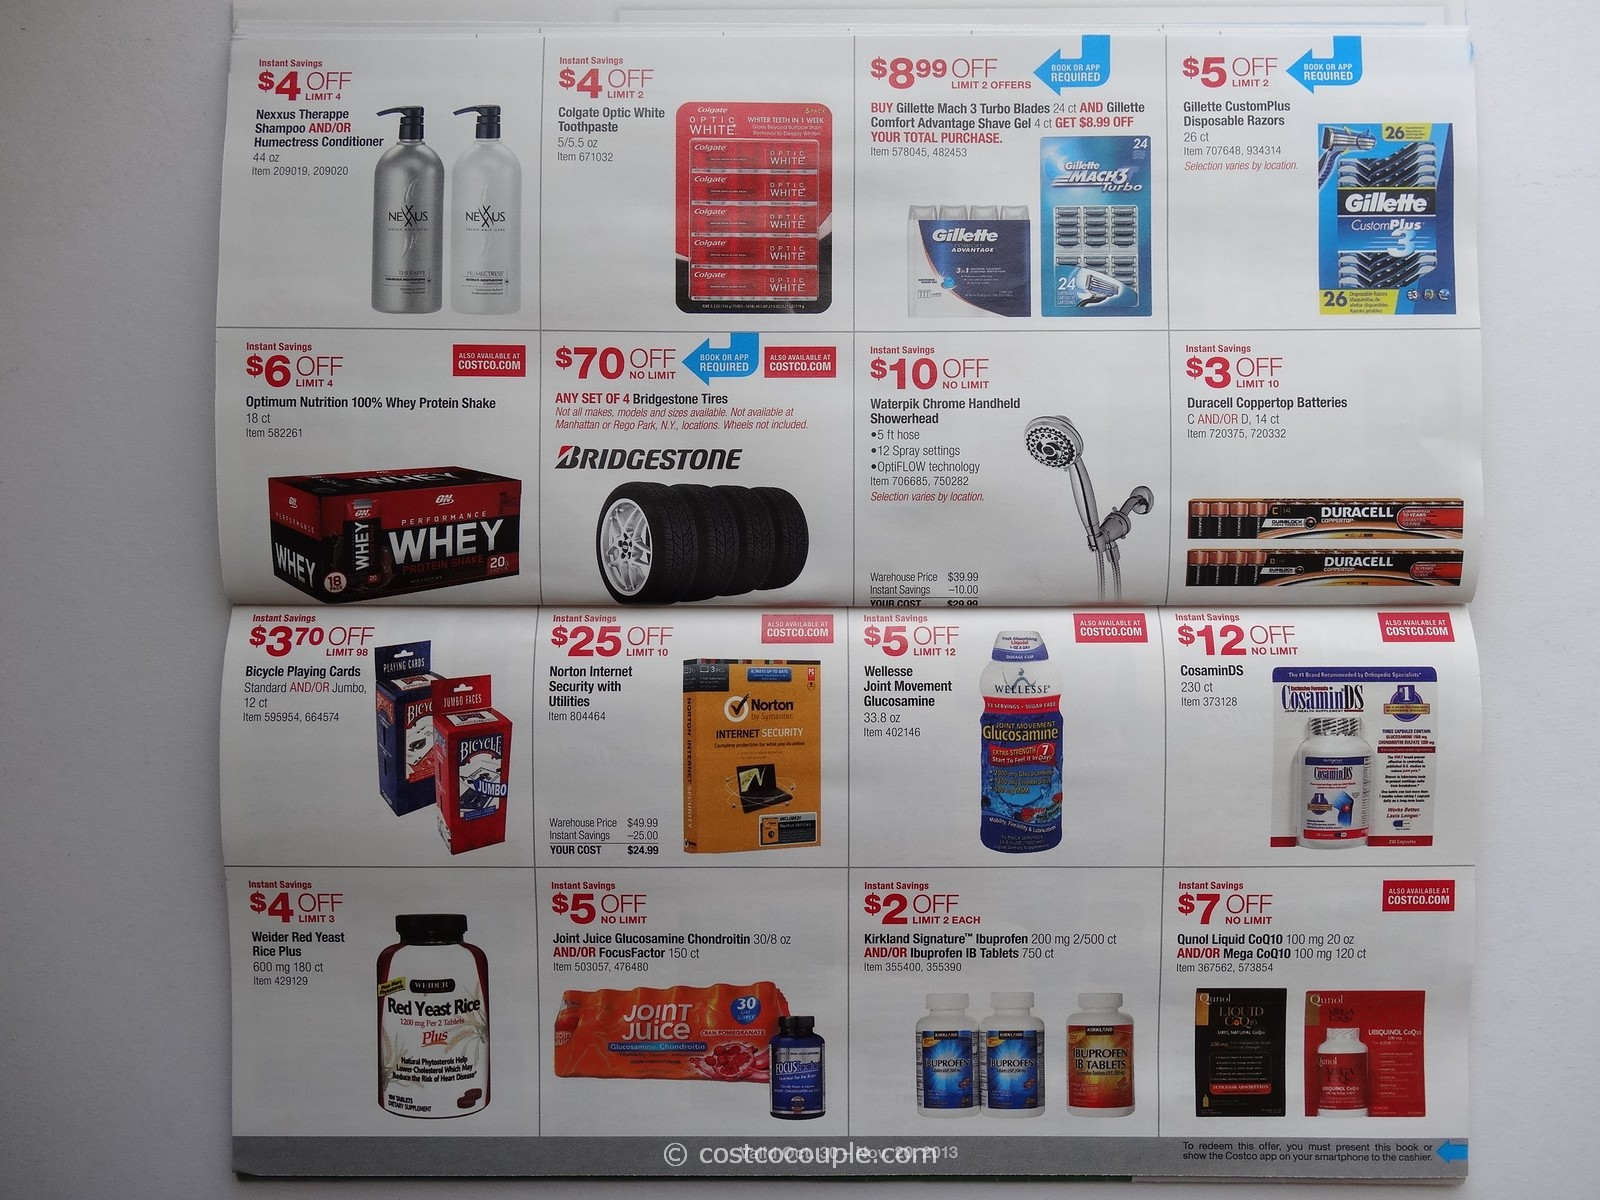 December's Costco coupon book is here, and we've got a list of all the savings in one place! The in-store deals will be valid from November 27th through December 24th.